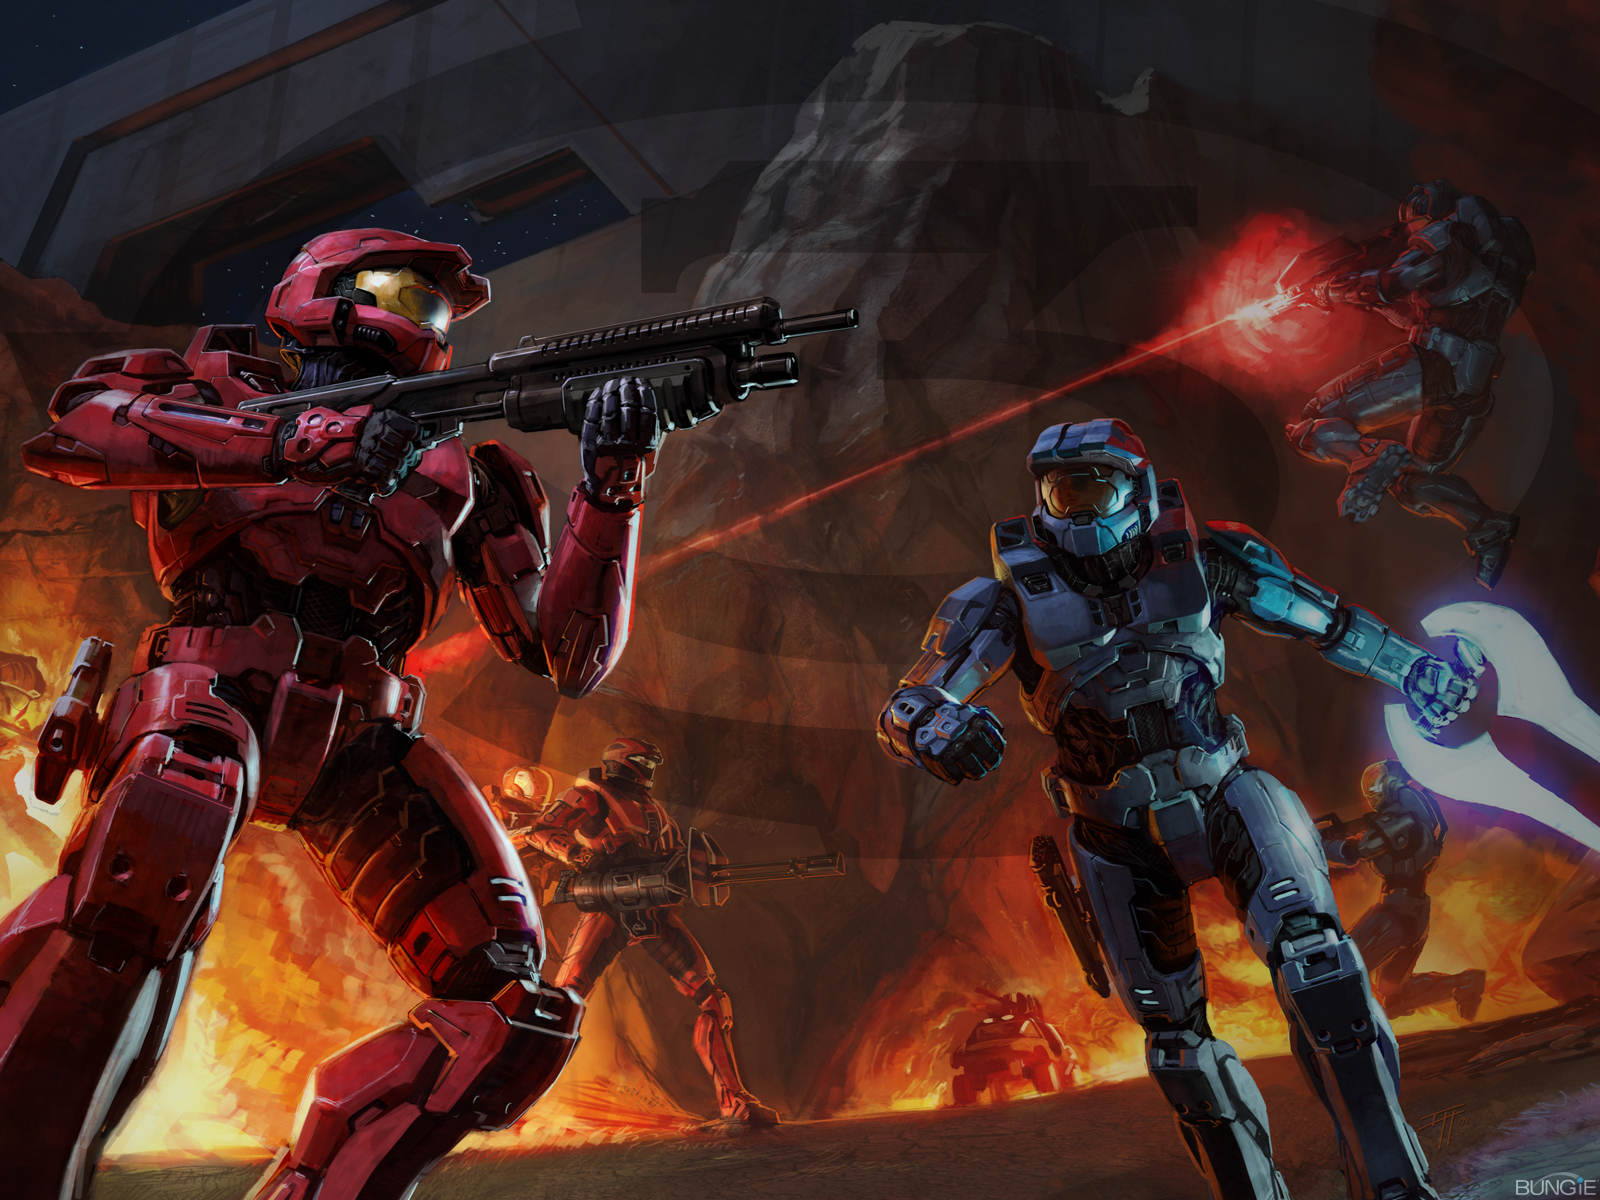 Wallpapers HD: Wallpapers De Halo 1, 2, 3 (17) Fondos De